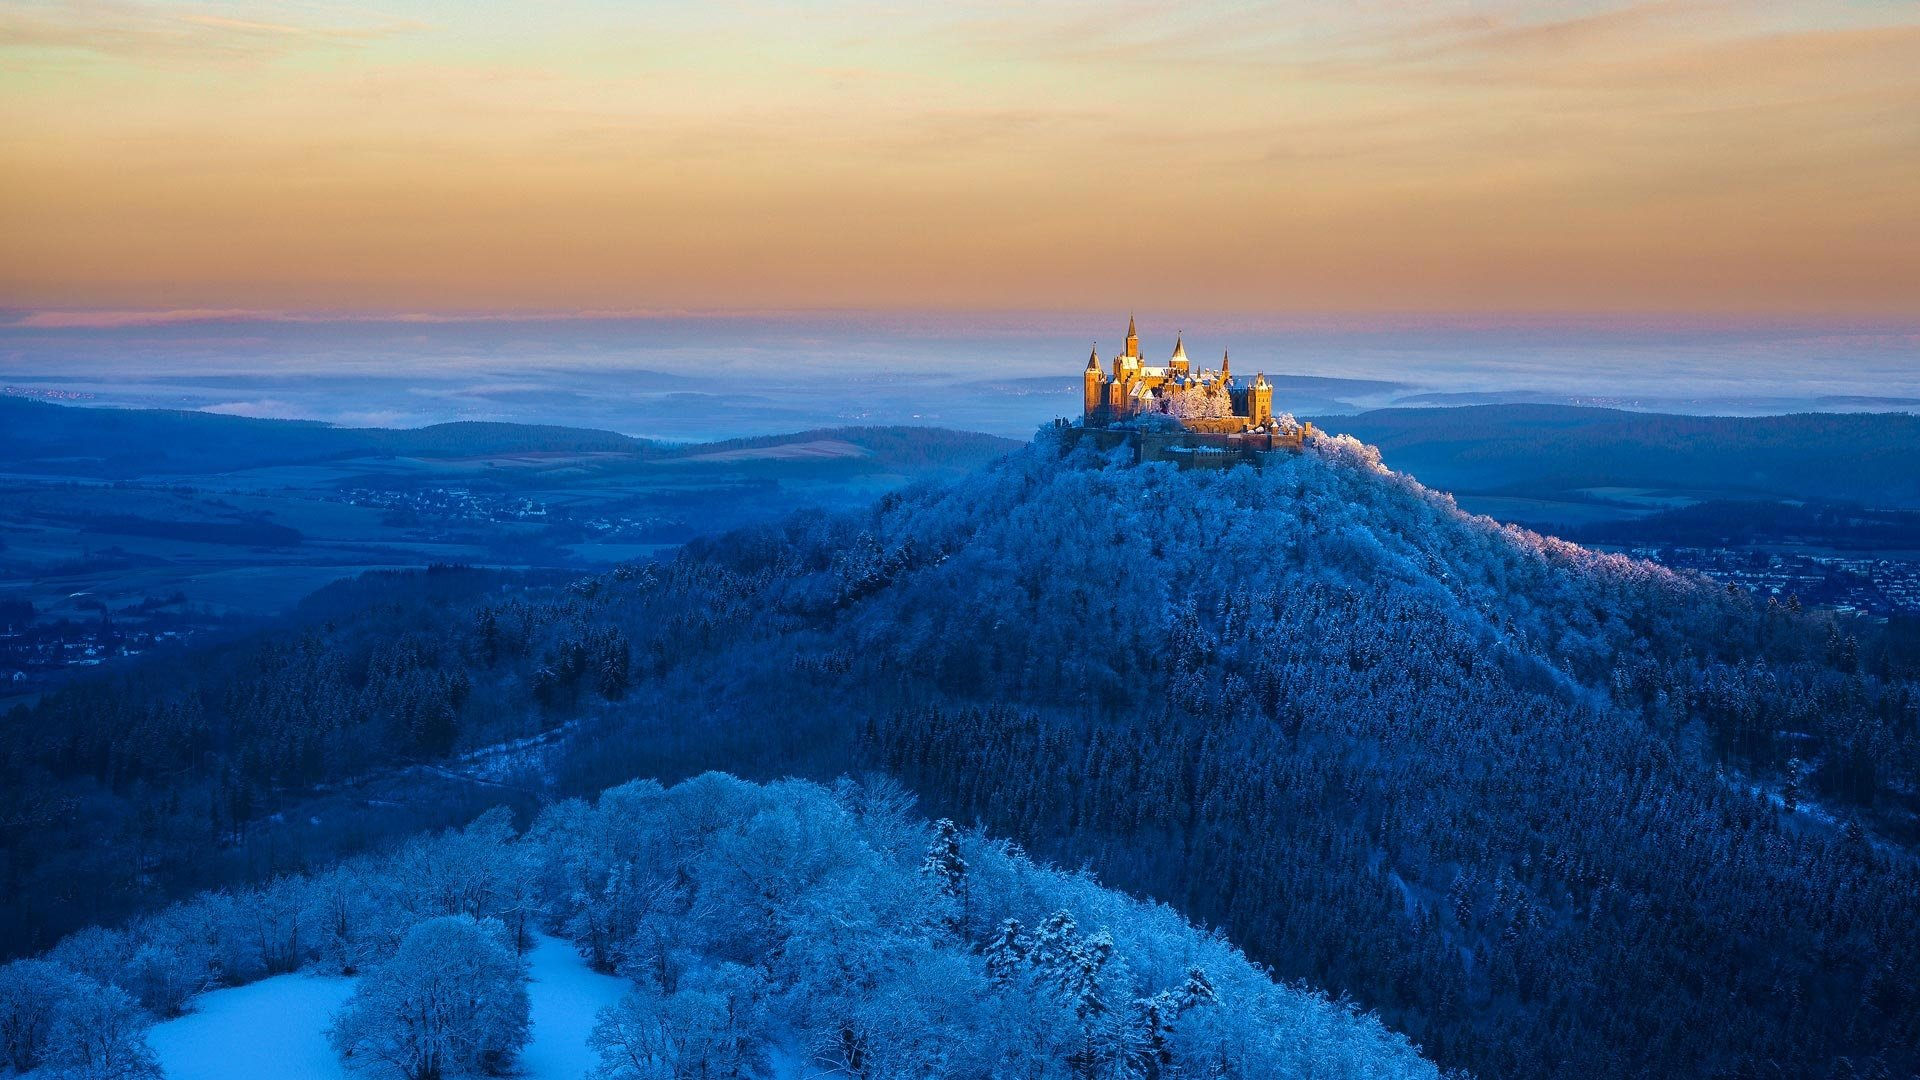 Hohenzollern Castle HD Wallpaper Background Image 1920x1080 1920x1080